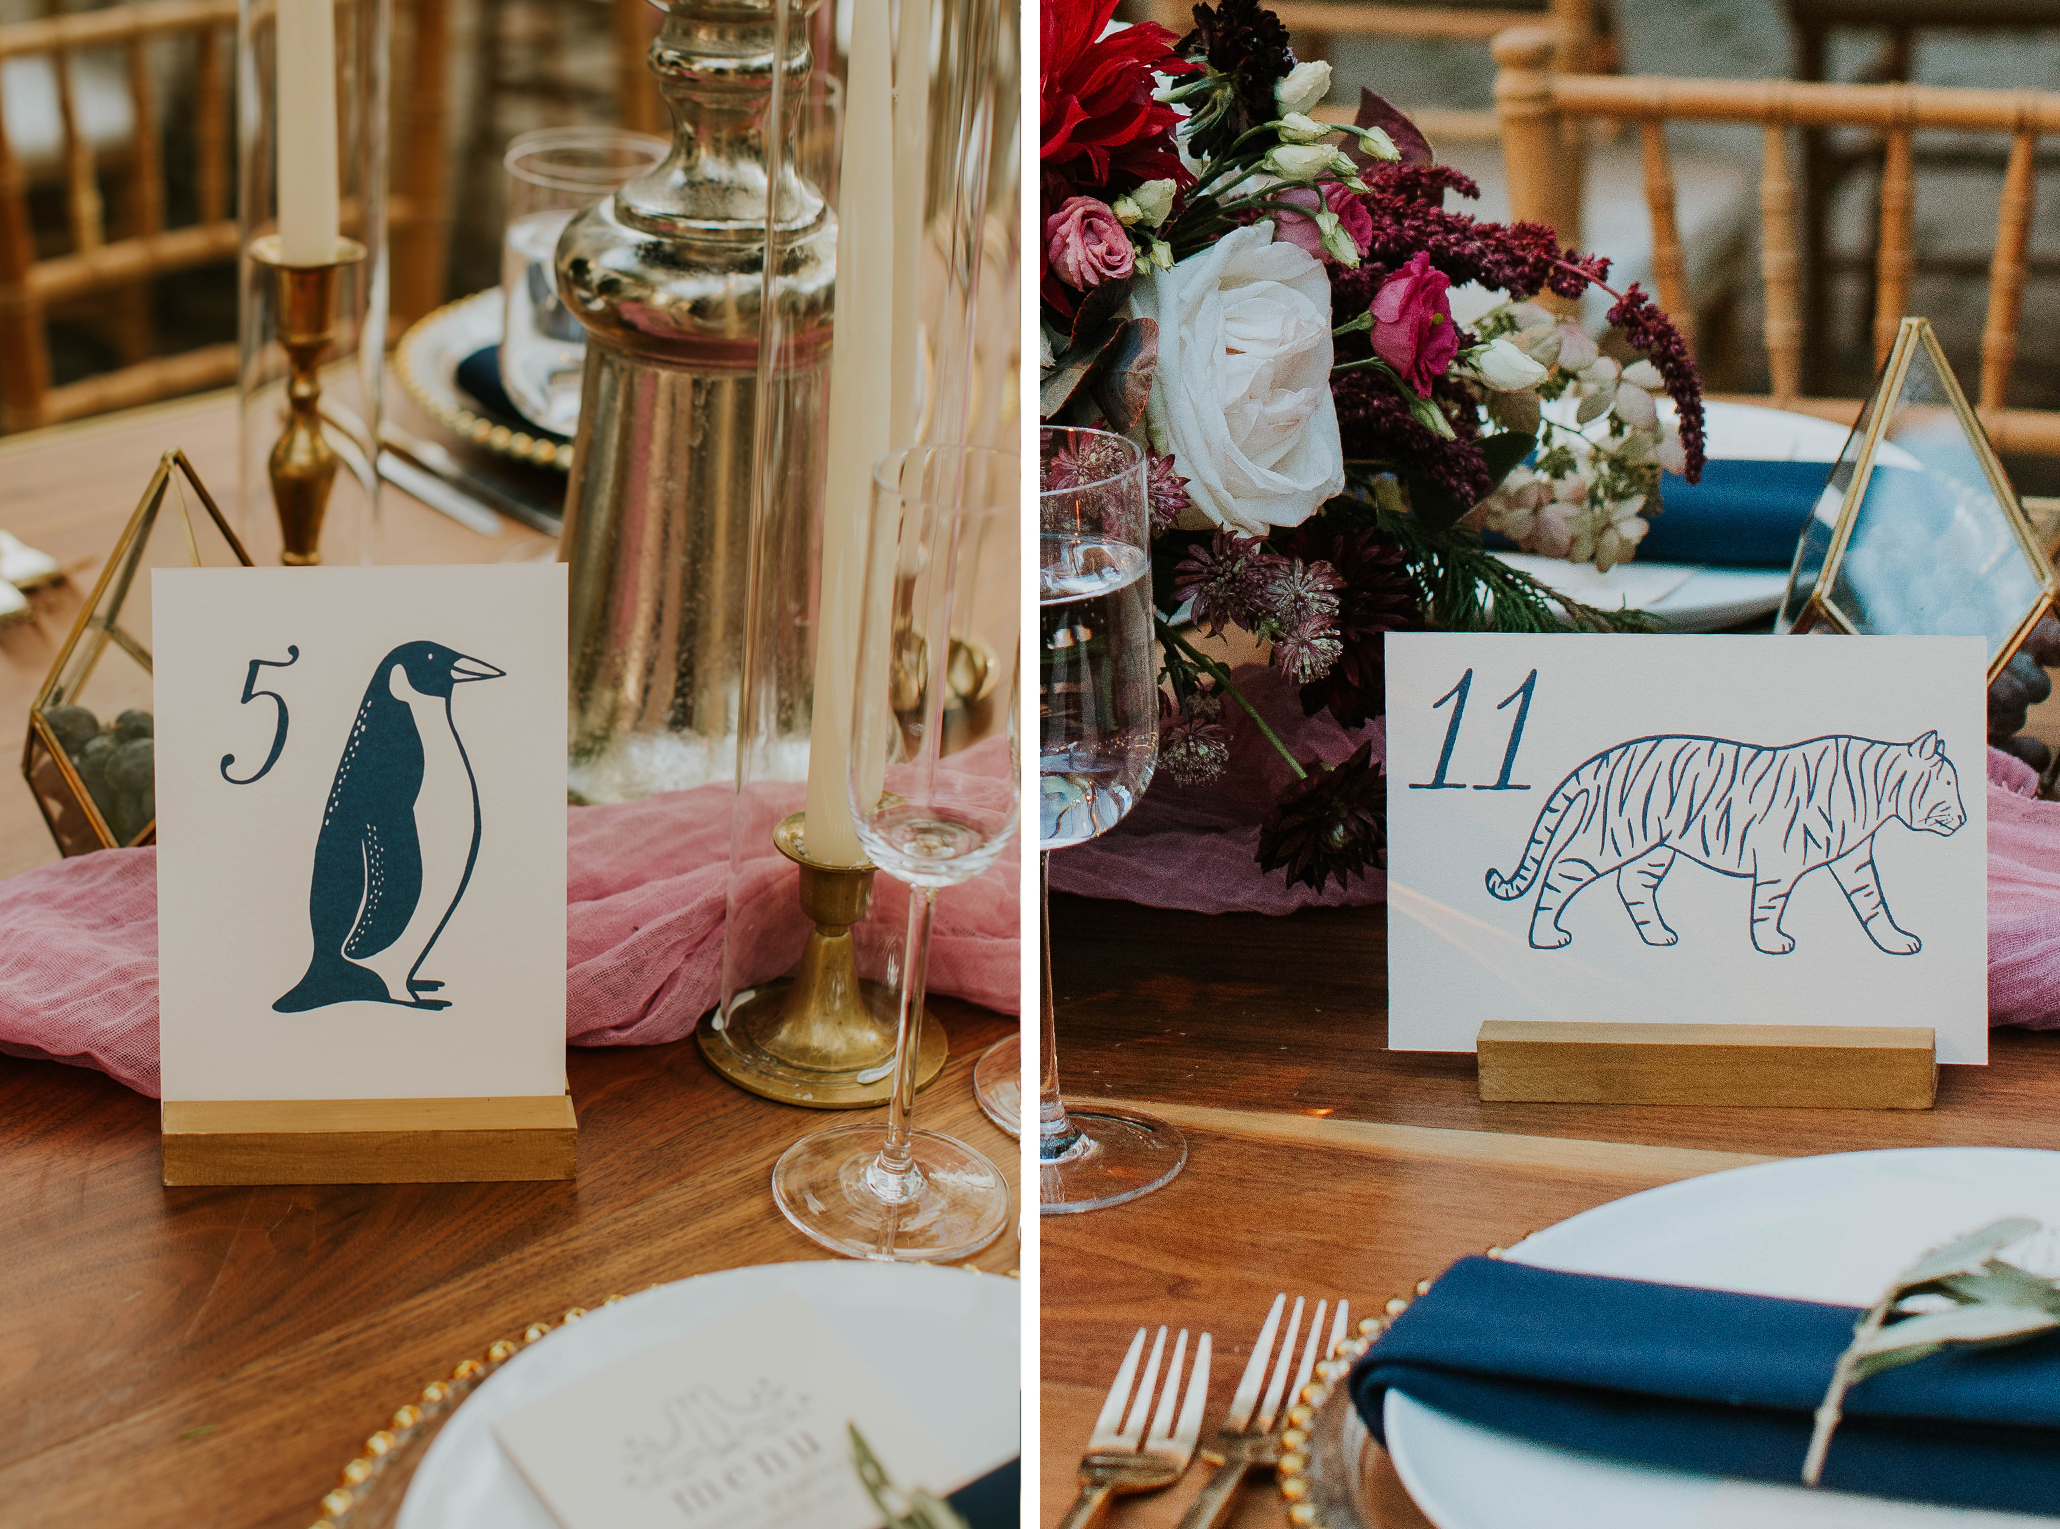 illustrated animal table numbers nyc Central Park zoo wedding, custom design wedding invitations and details